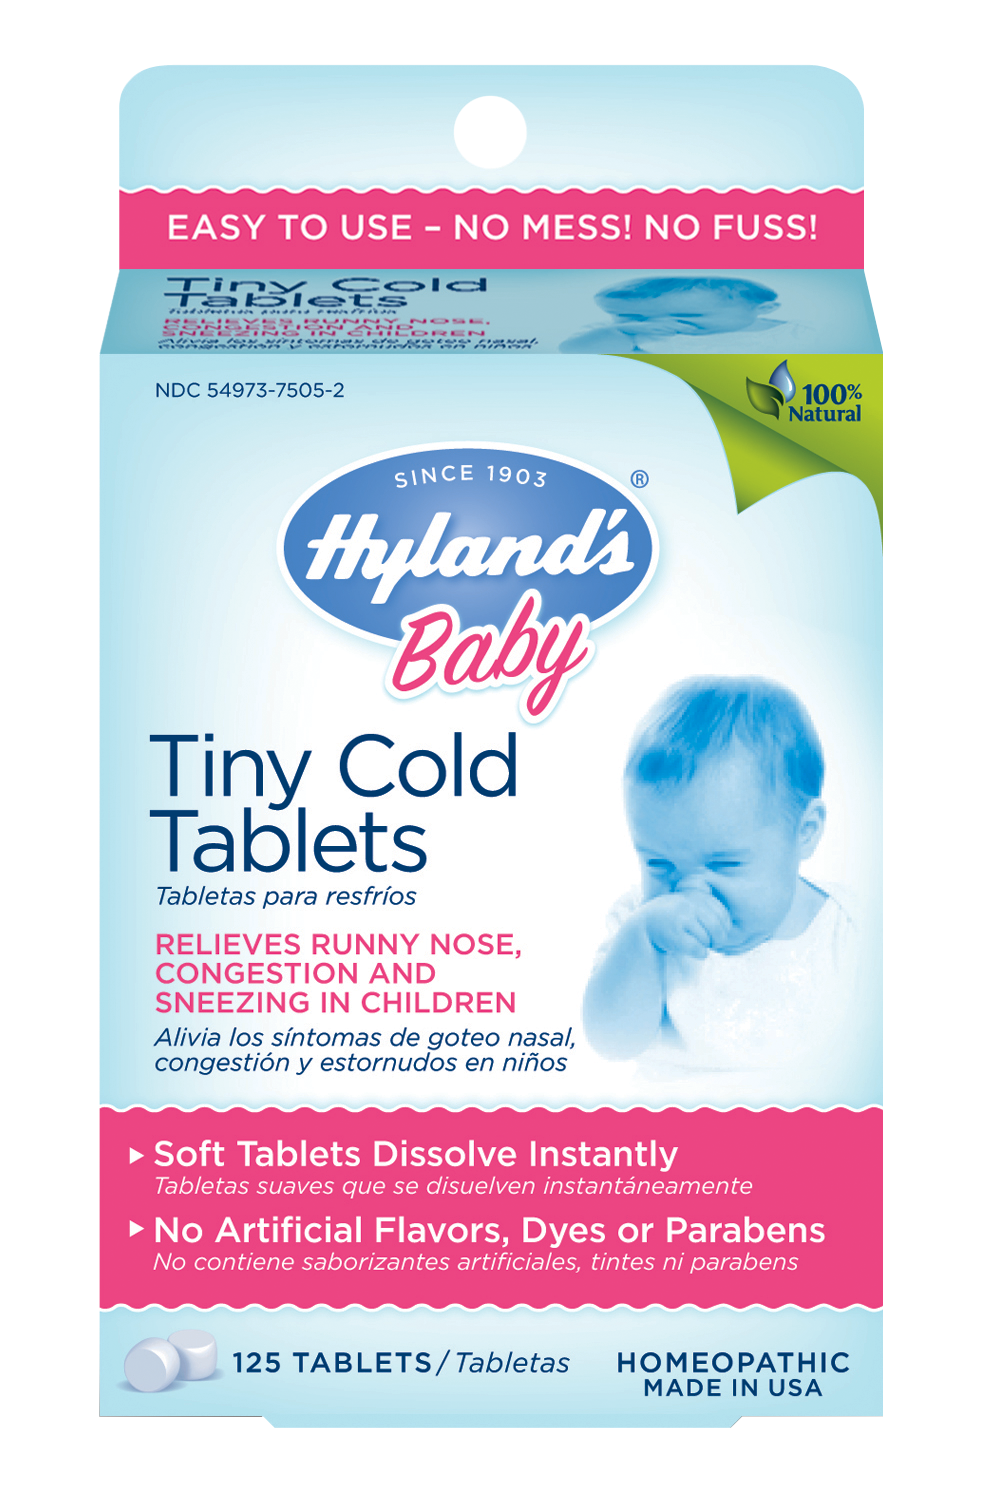 Baby Tiny Cold Tablets Best Things Ever They Really Do Help Baby Cold Remedies Baby Runny Nose Sick Baby